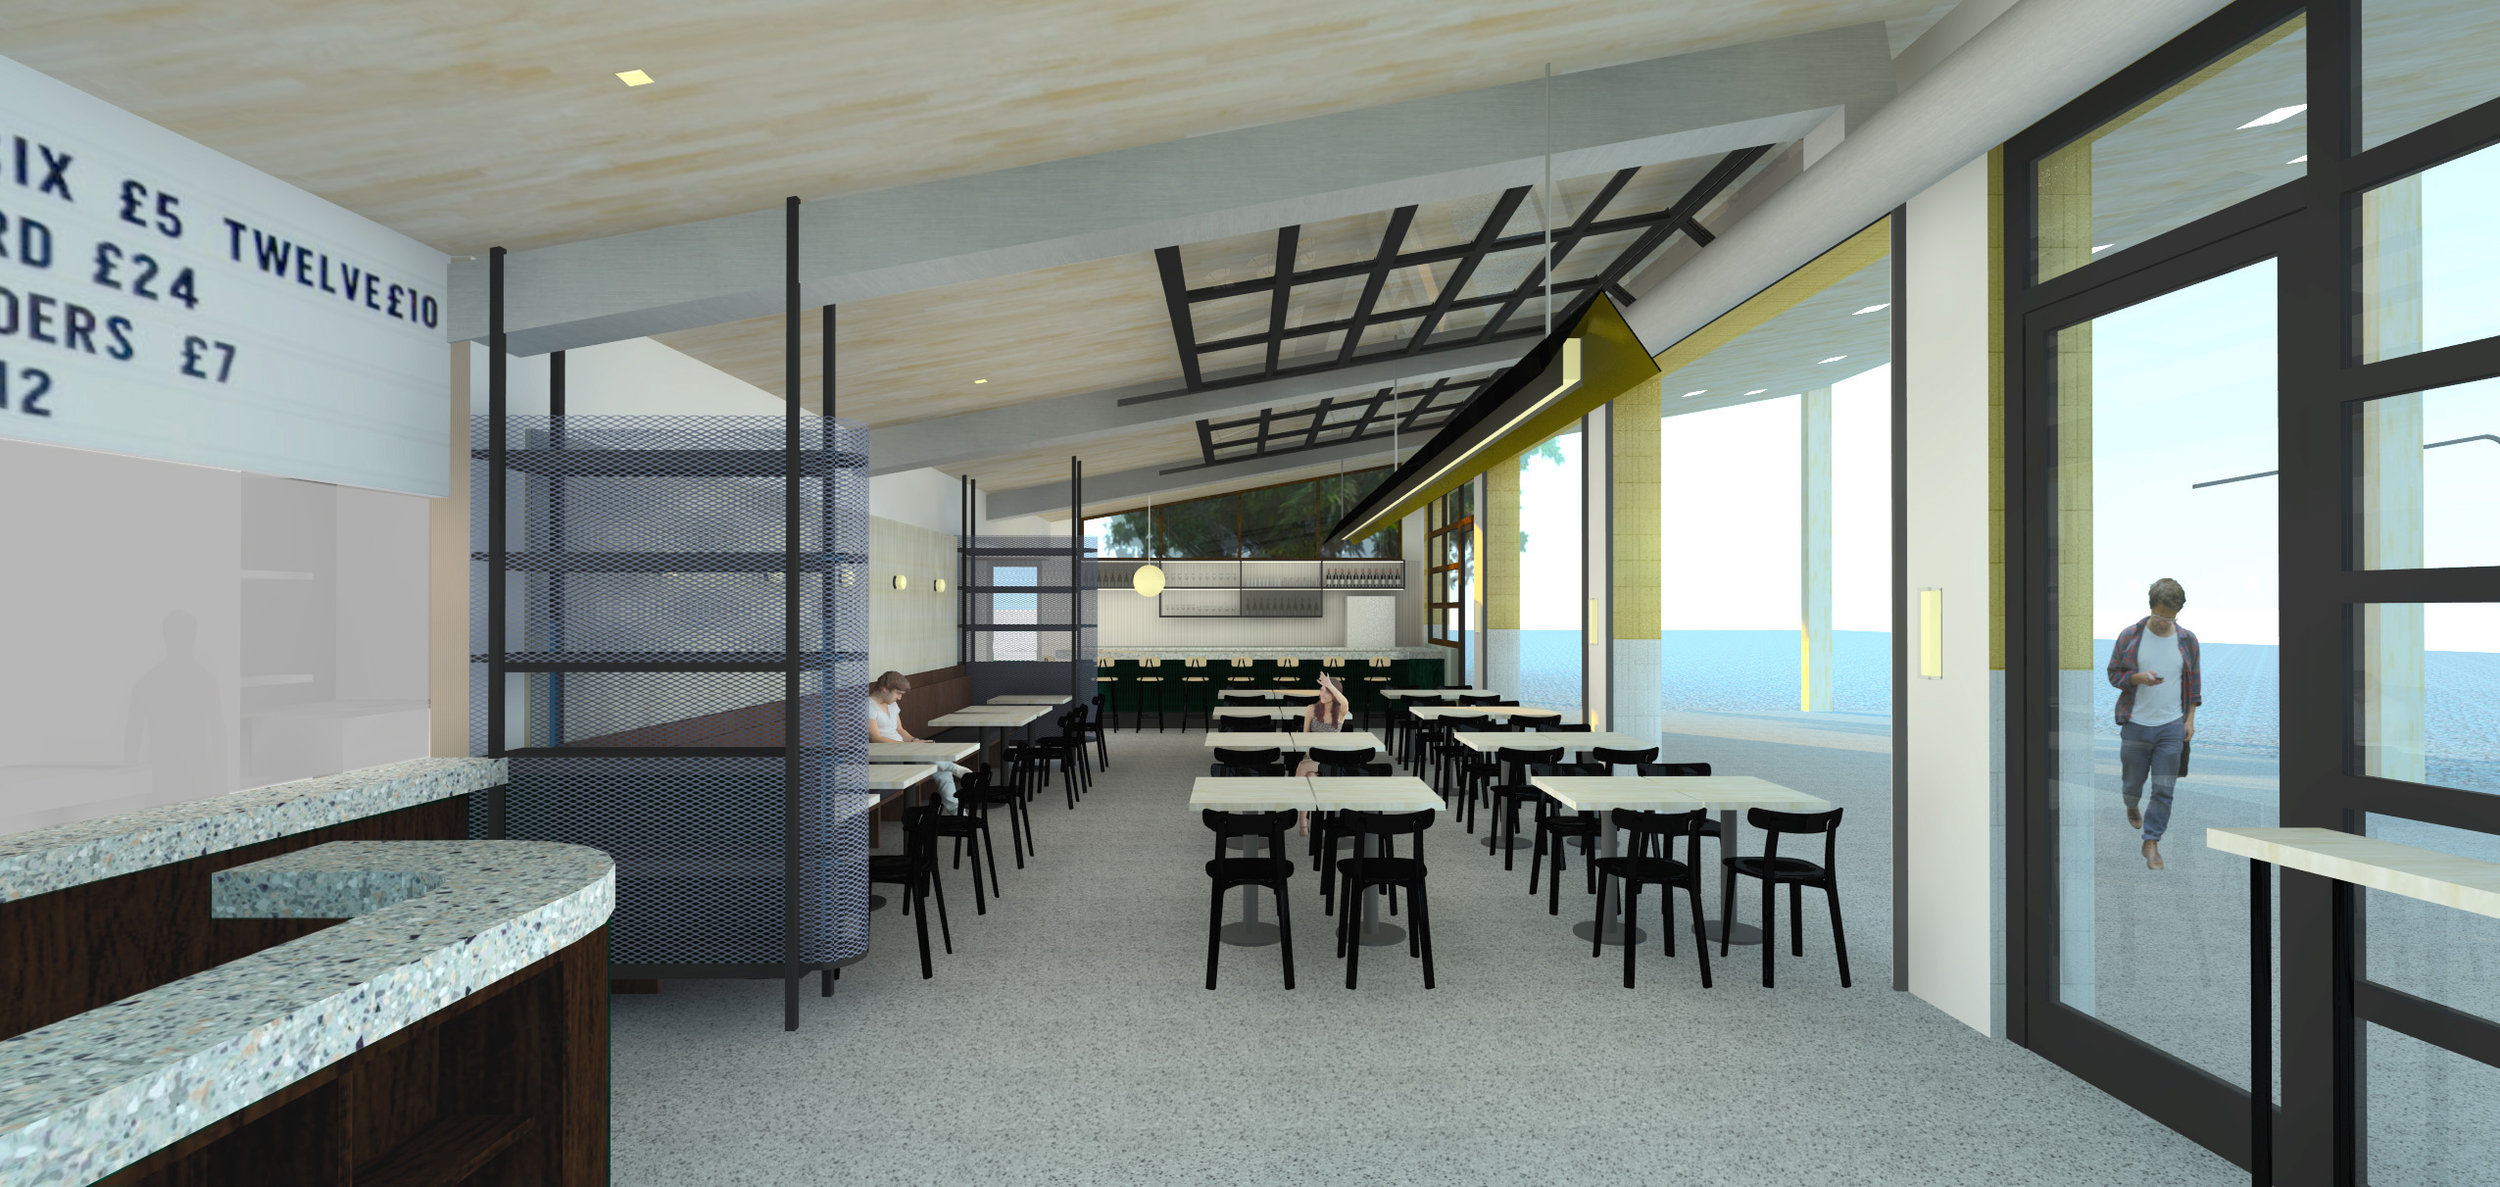 2. VIEW FROM ENTRY - METAL DUCTS, BLUE STORAGE SCREENS, WOOD SEATING, BAR, ORDERING COUNTER